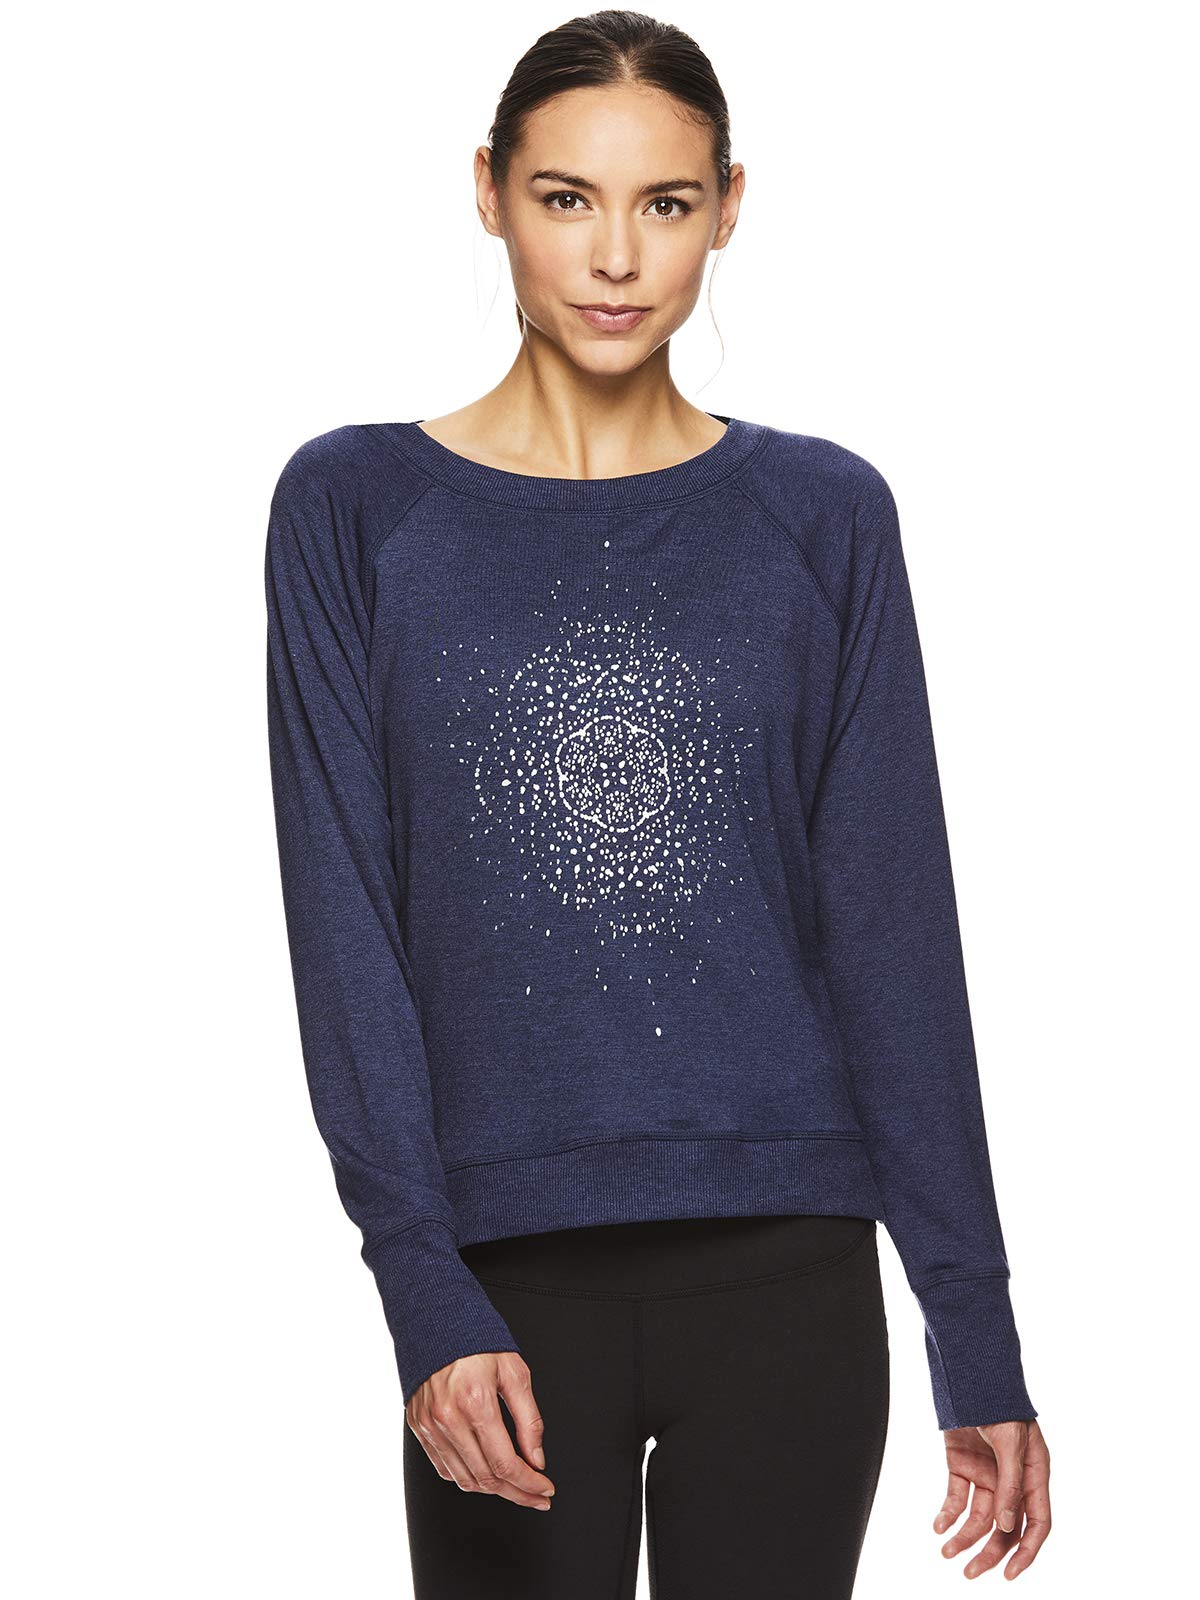 Gaiam Women's Pullover Yoga Sweater - Long Sleeve Graphic Activewear Shirt - Calla Medieval Blue Heather, Large by Gaiam